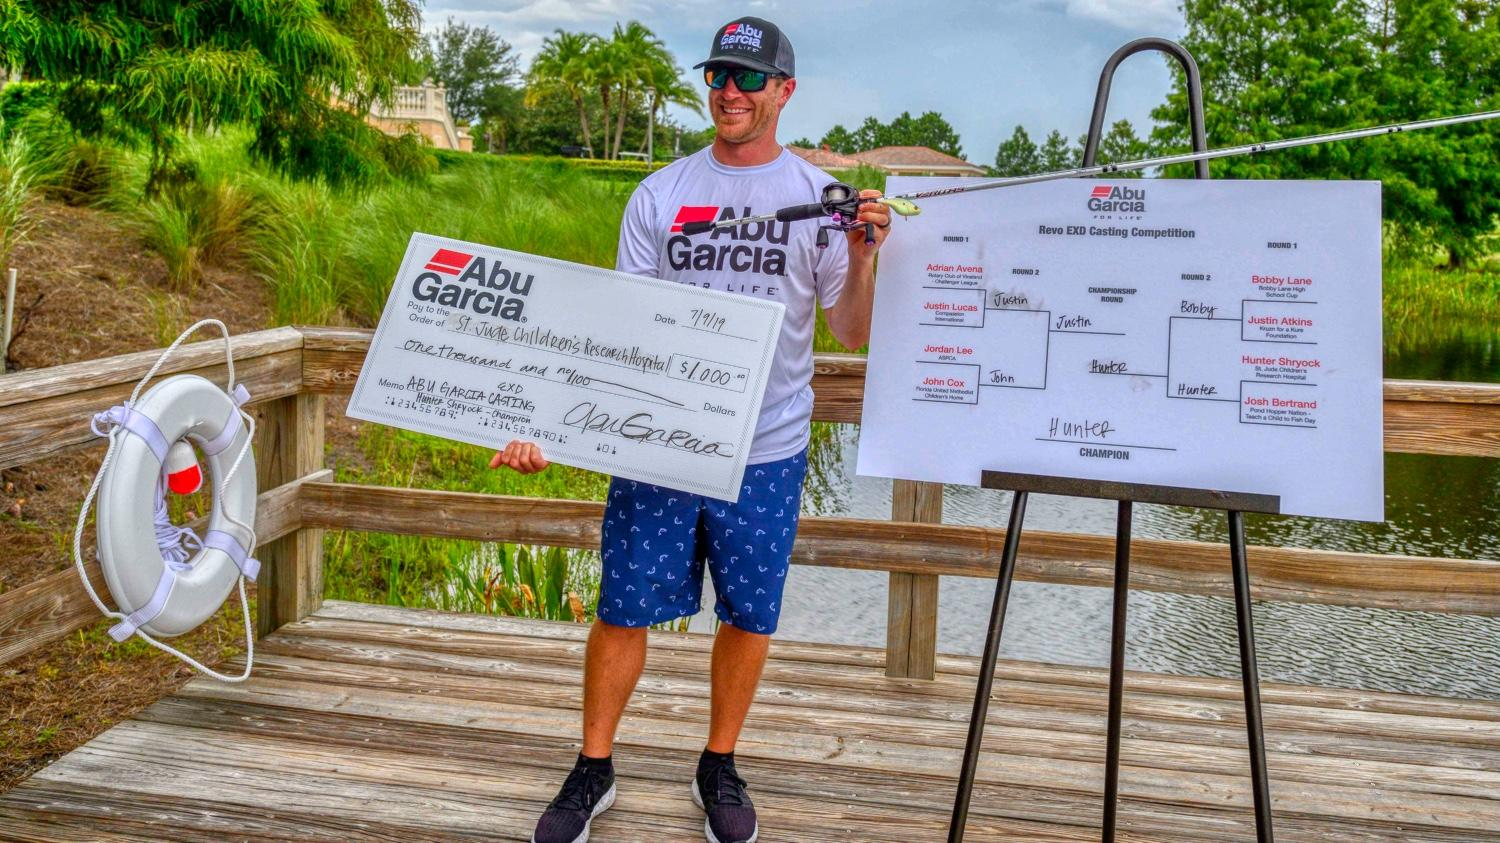 Shryock Wins Casting Competition with New EXD